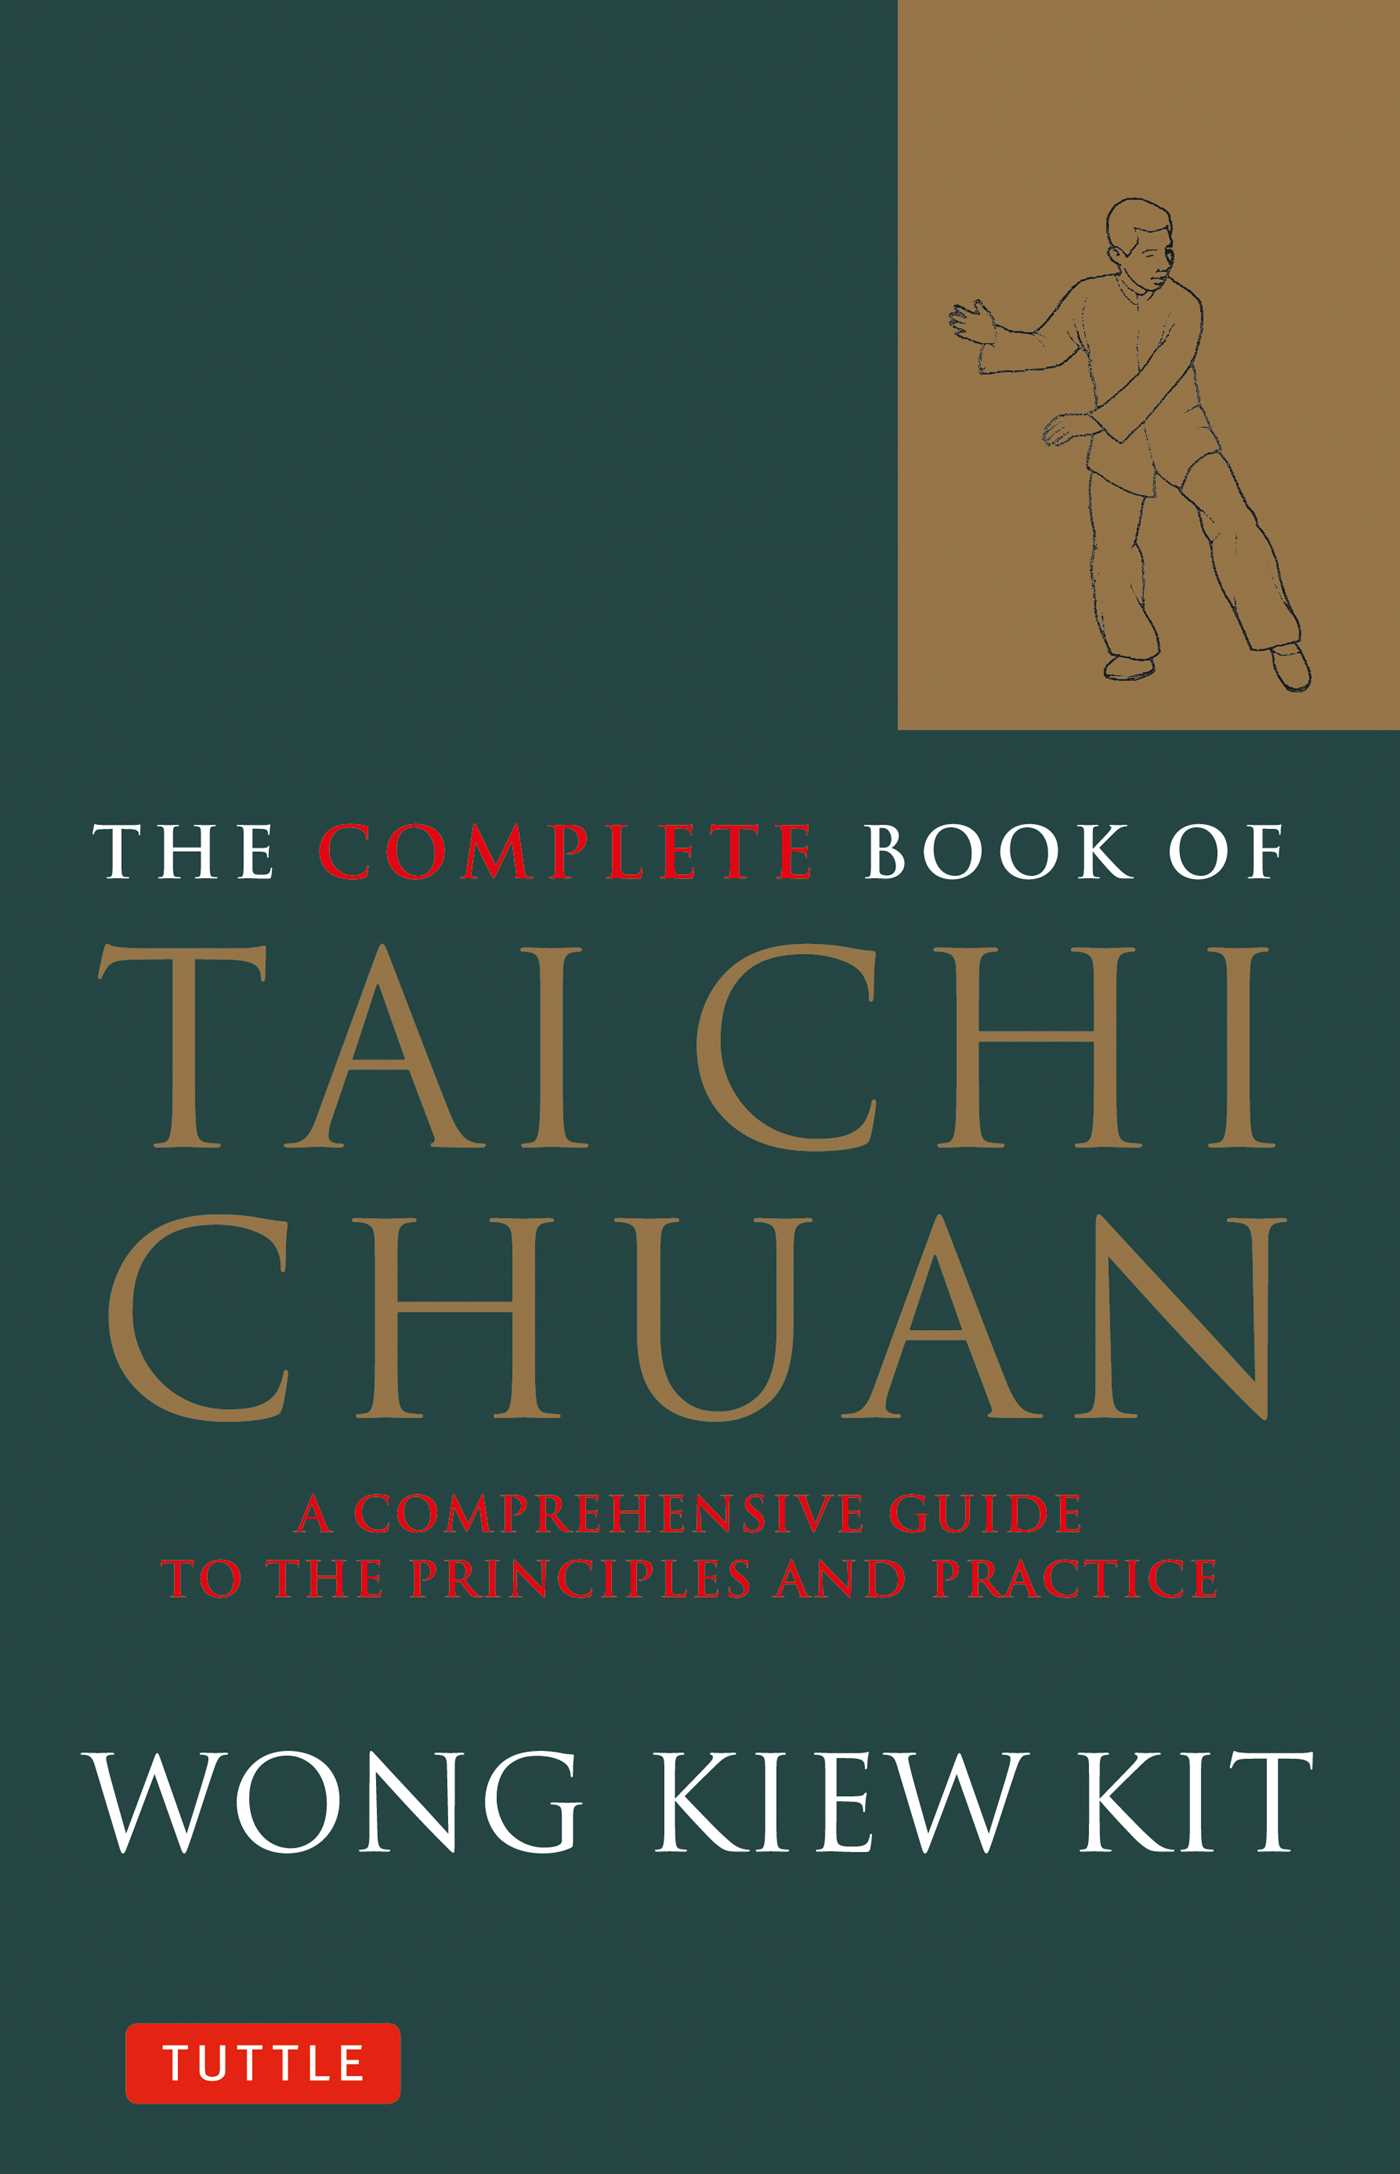 The-complete-book-of-tai-chi-chuan-9780804834407_hr